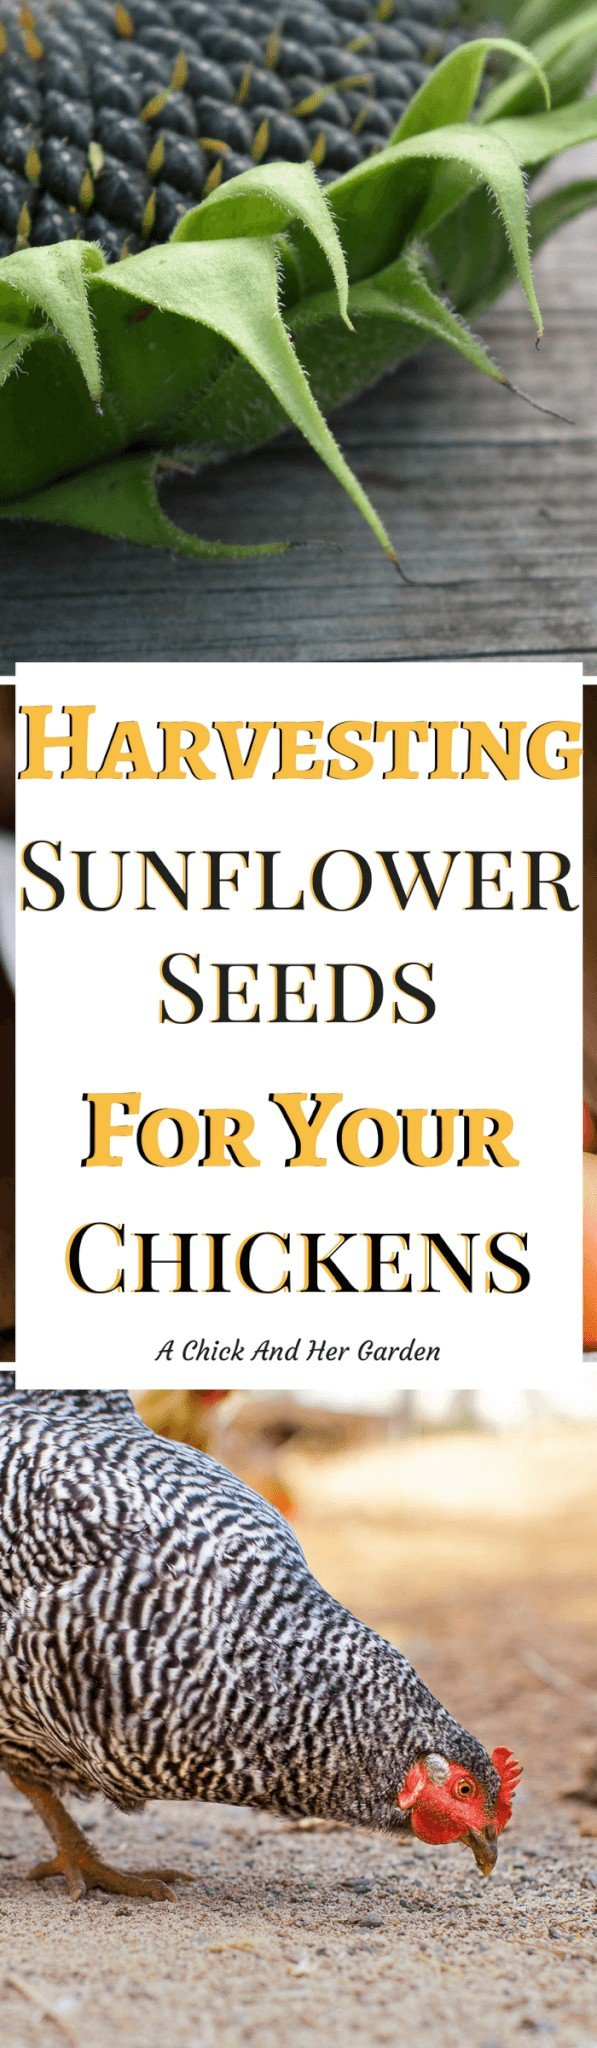 Could you be harvesting sunflower seeds for chickens? Absolutely! And they'll even thank you for it! #freechickenfood #raisingchickens #backyardchickens #achickandhergarden